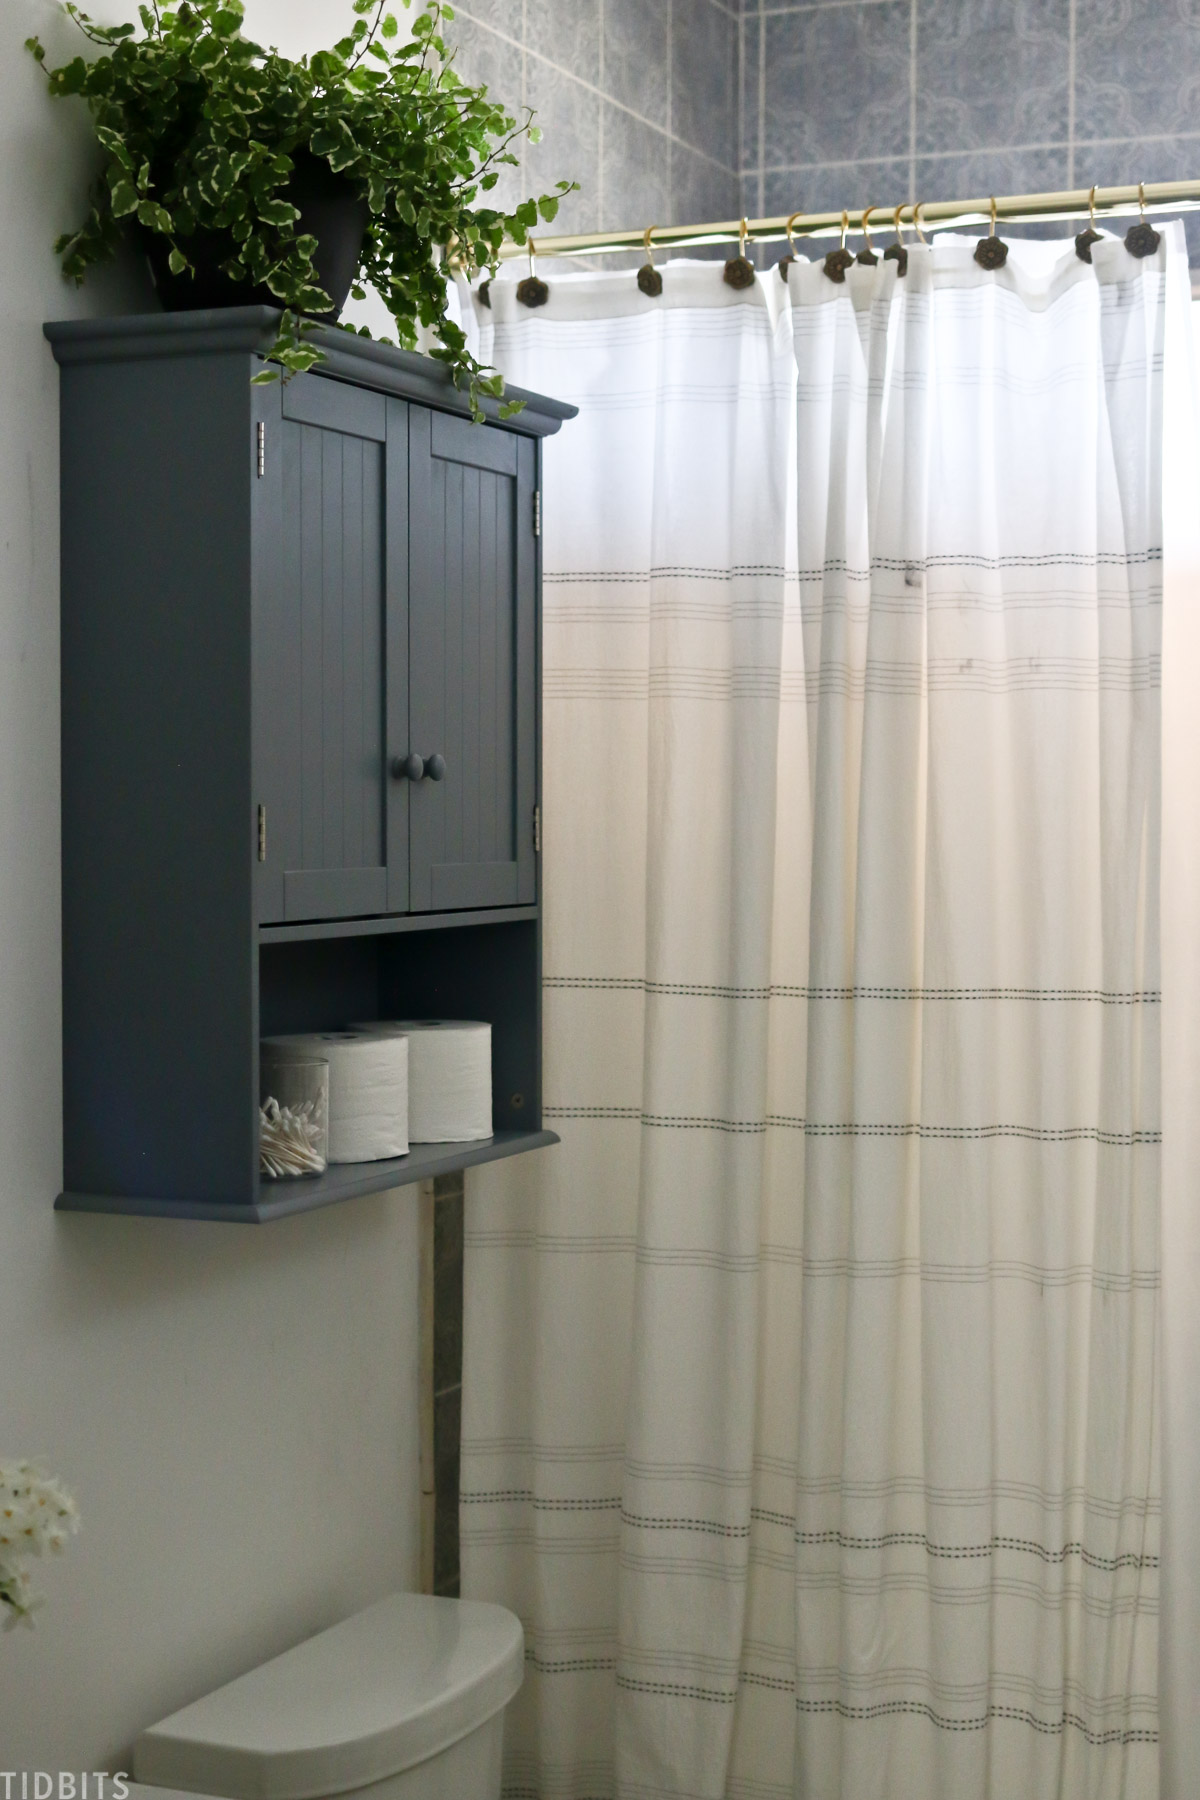 medicine cabinet that's painted bluish gray is hanging above toilet